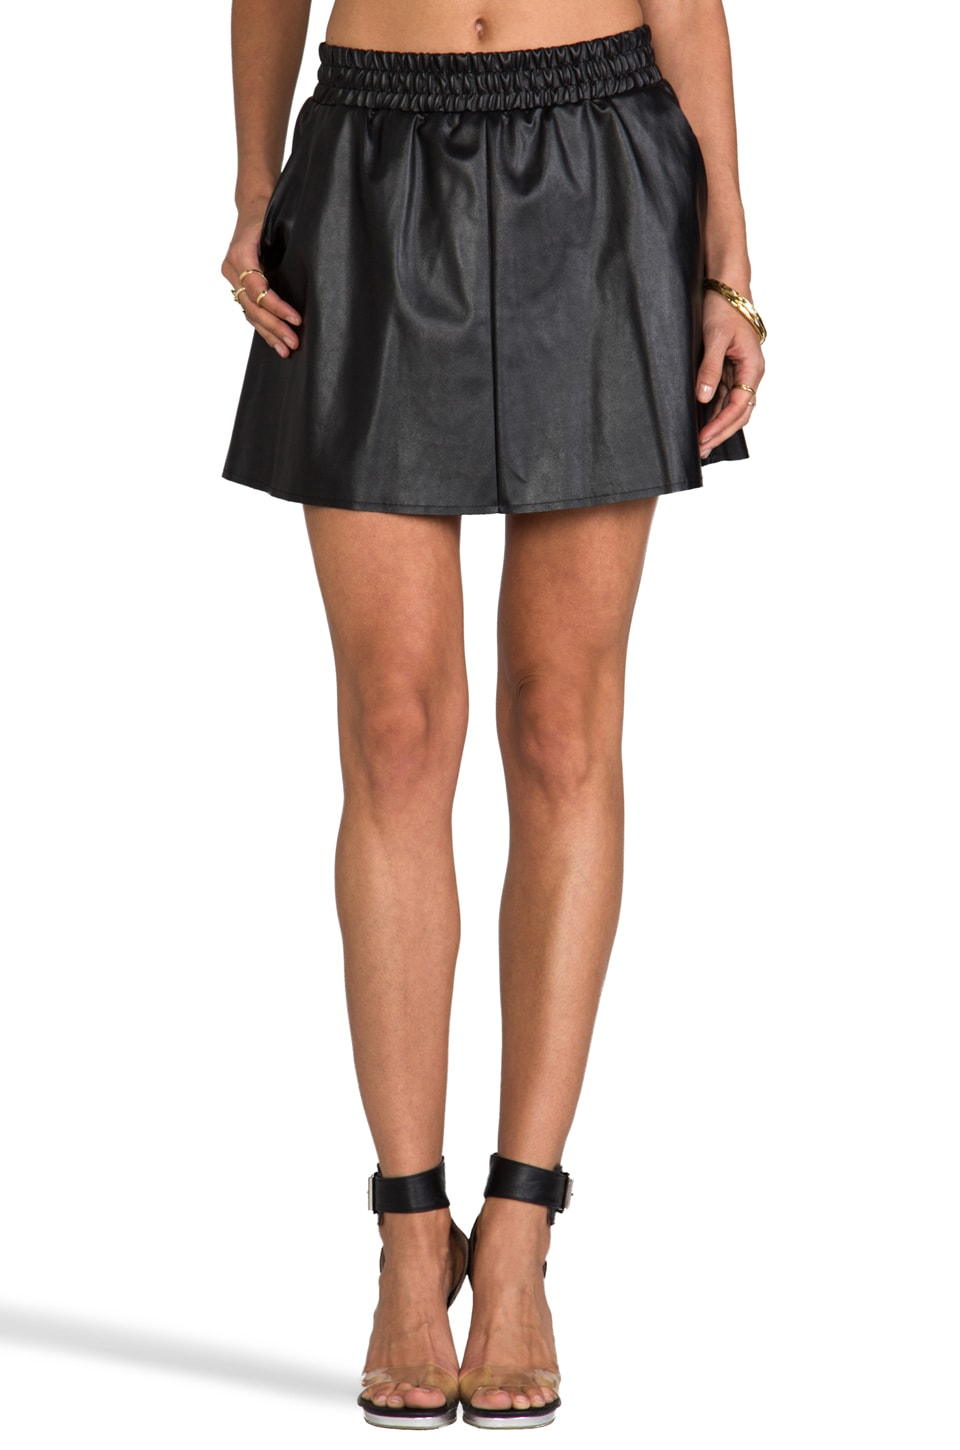 BCBGMAXAZRIA Laika Skirt in Black